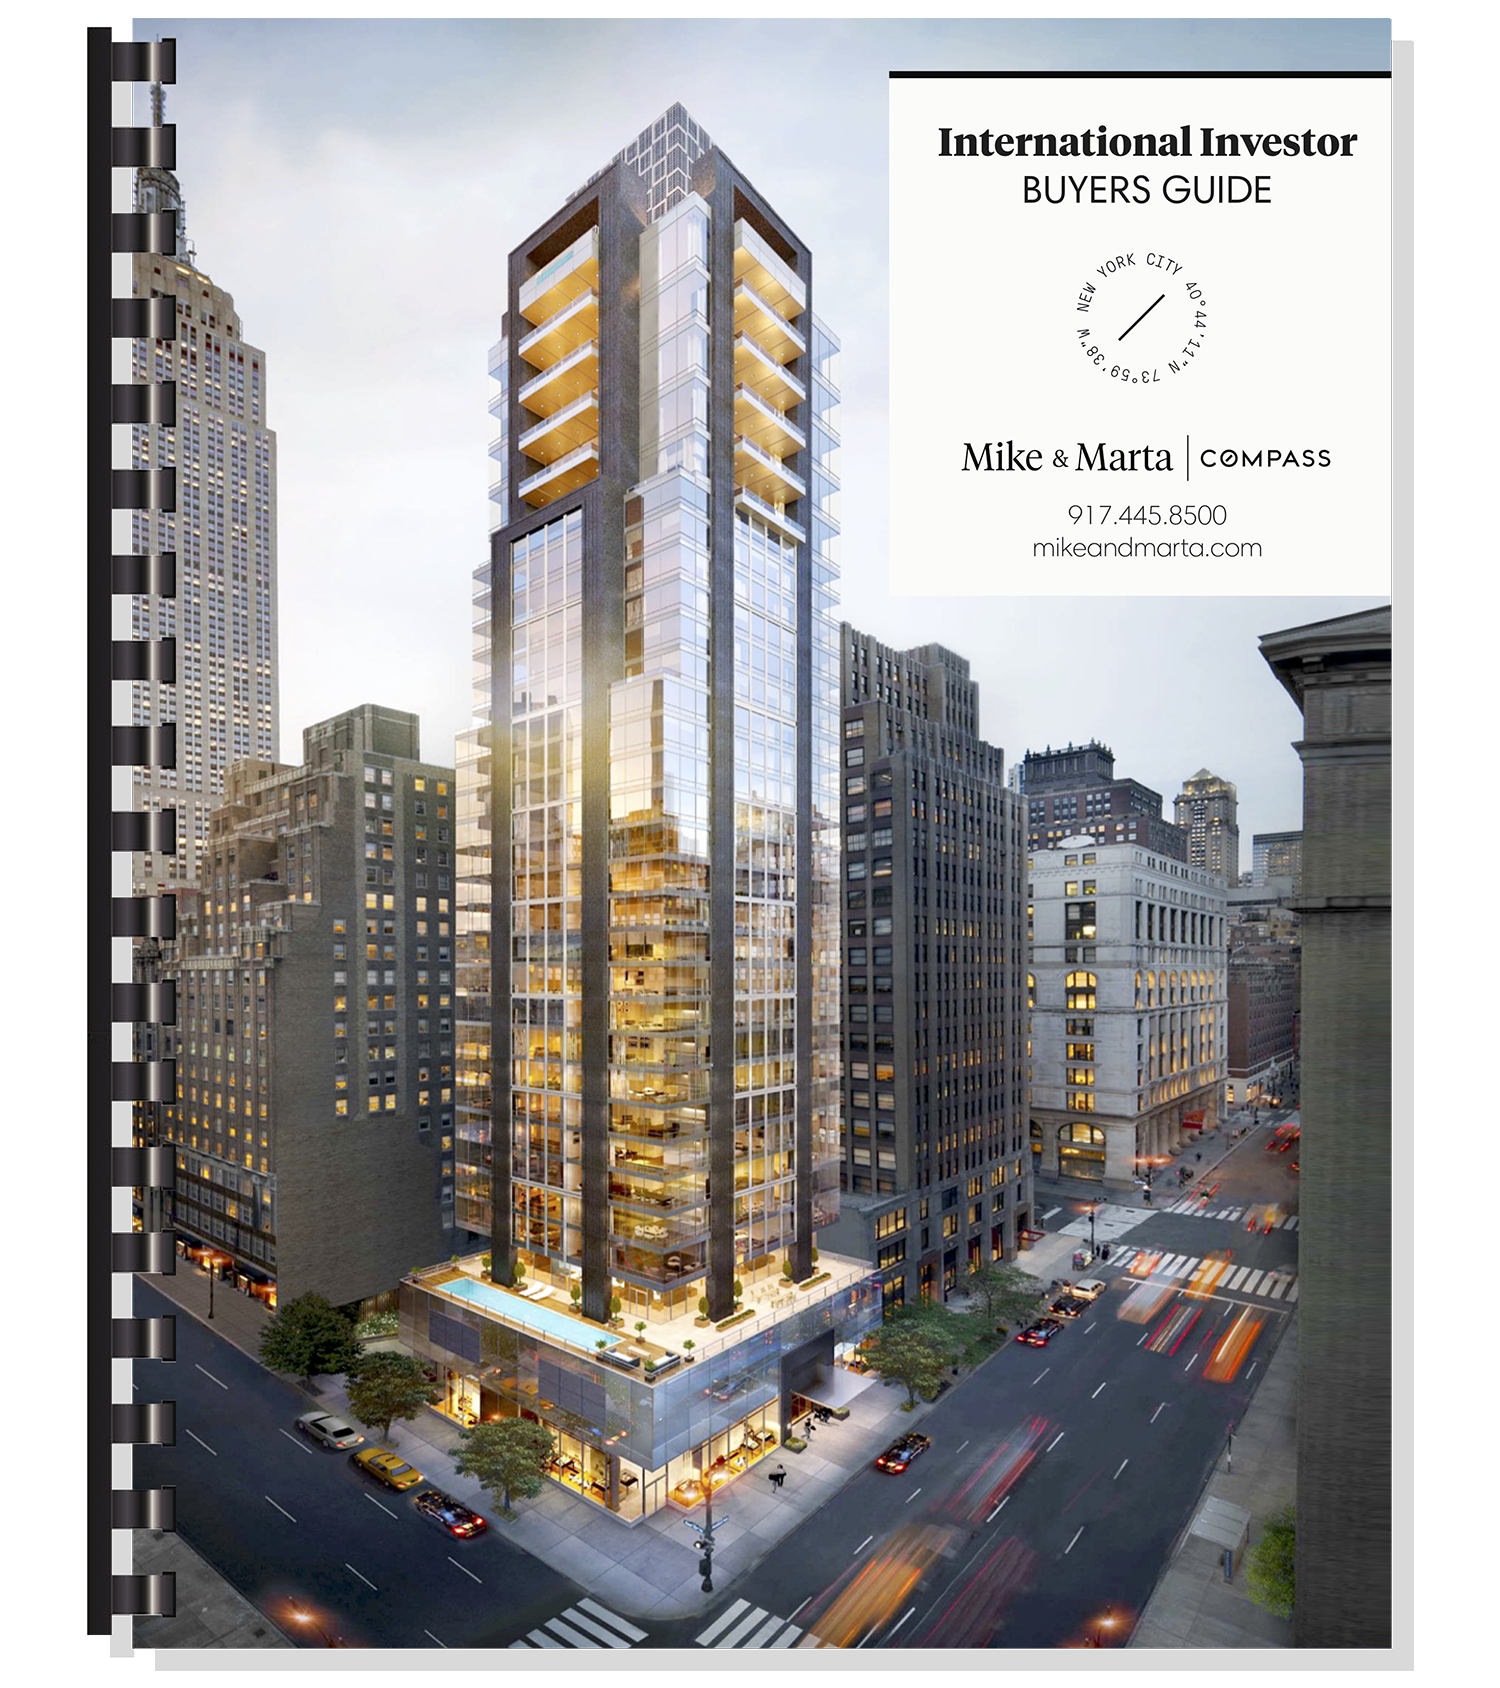 International Buyers& Investors - If you do not live or work in the United States, the buying process requires additional consideration. Mike & Marta are experienced in the extra steps needed for international buyers. Our guide helps make sure that you understand the process.Download our guide and give us a call.